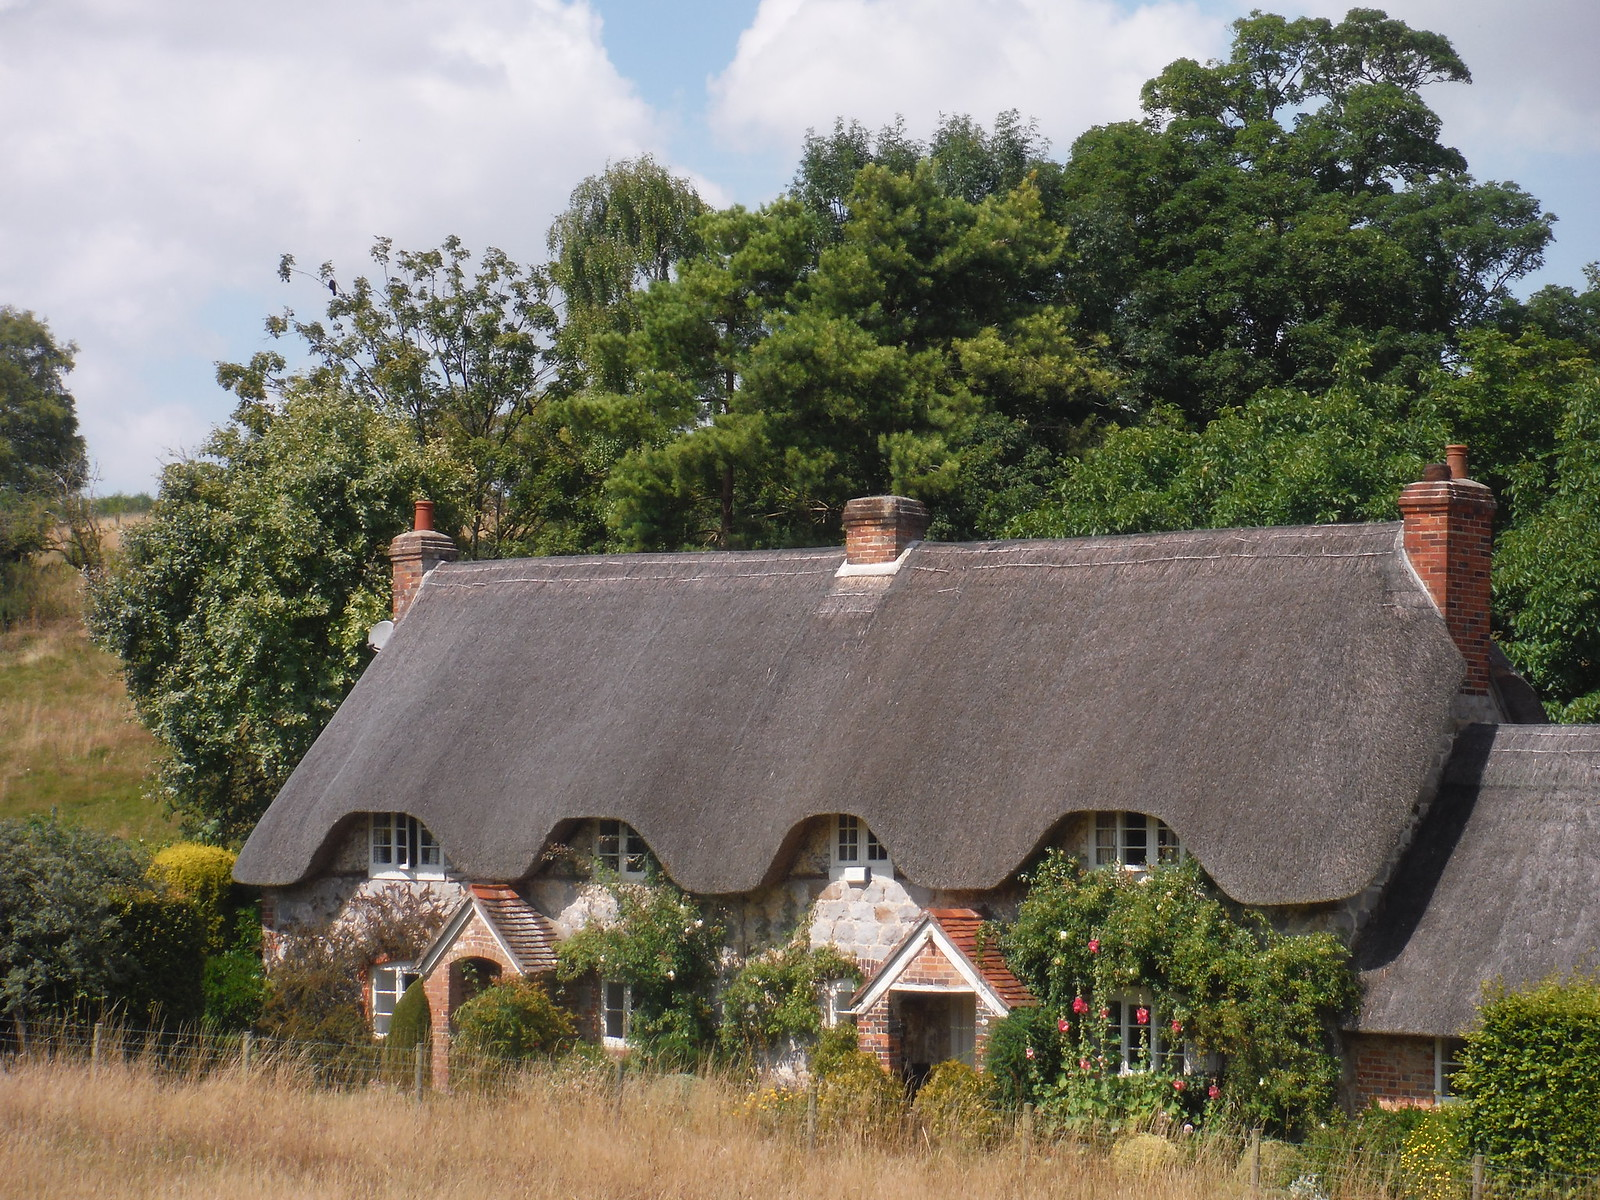 House in Lockeridge SWC Walk 255 Pewsey or Marlborough Circular via Avebury